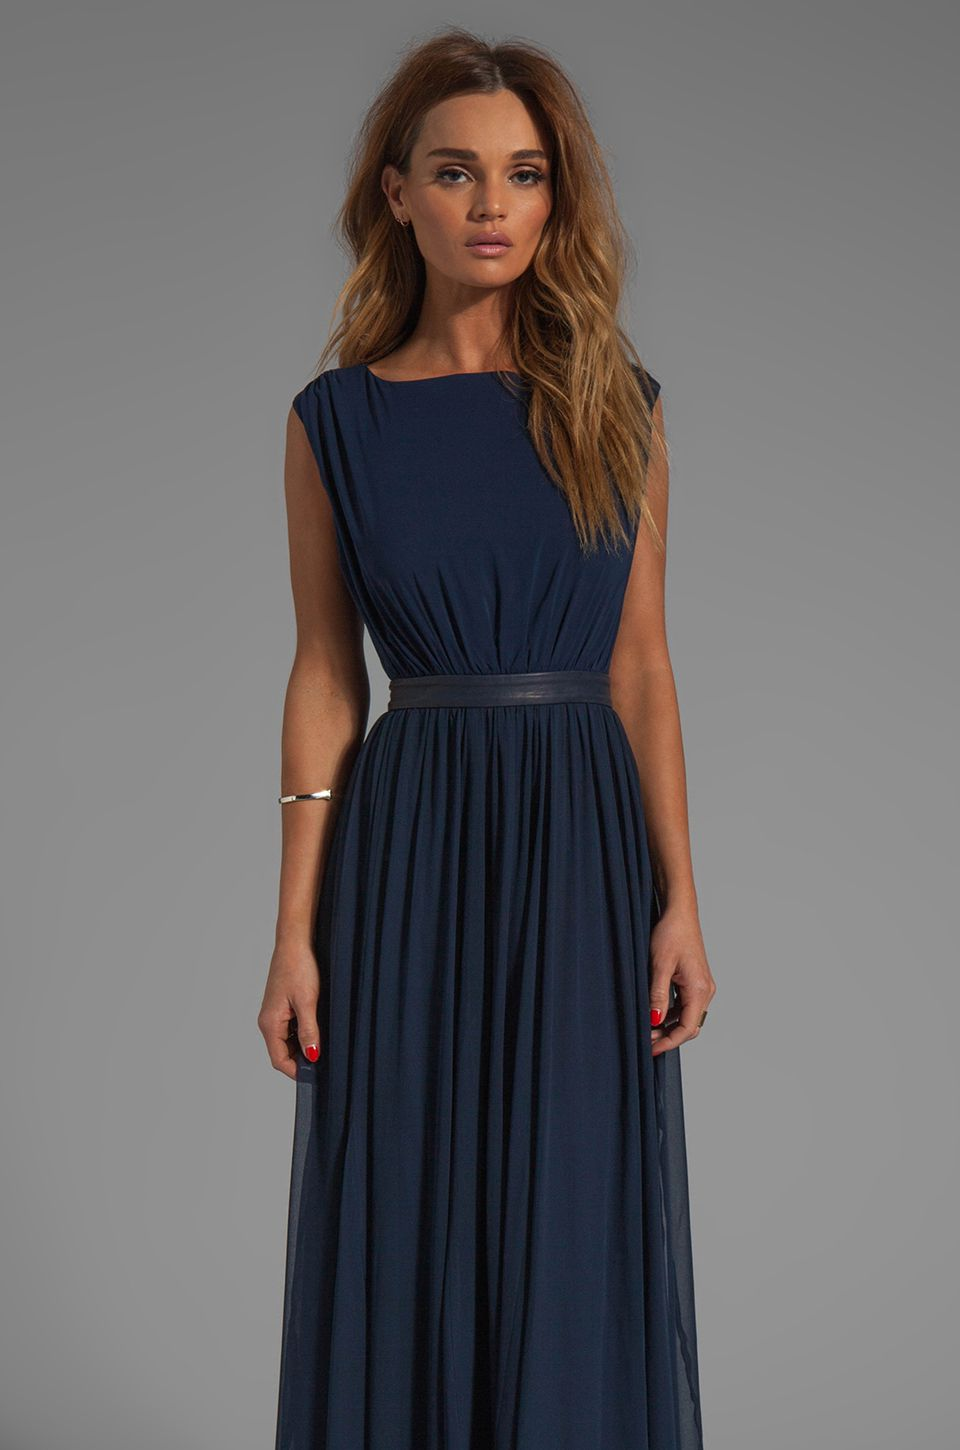 ceefd12b34 Alice + Olivia Triss Sleeveless Maxi Dress with Leather Trim in Navy ...